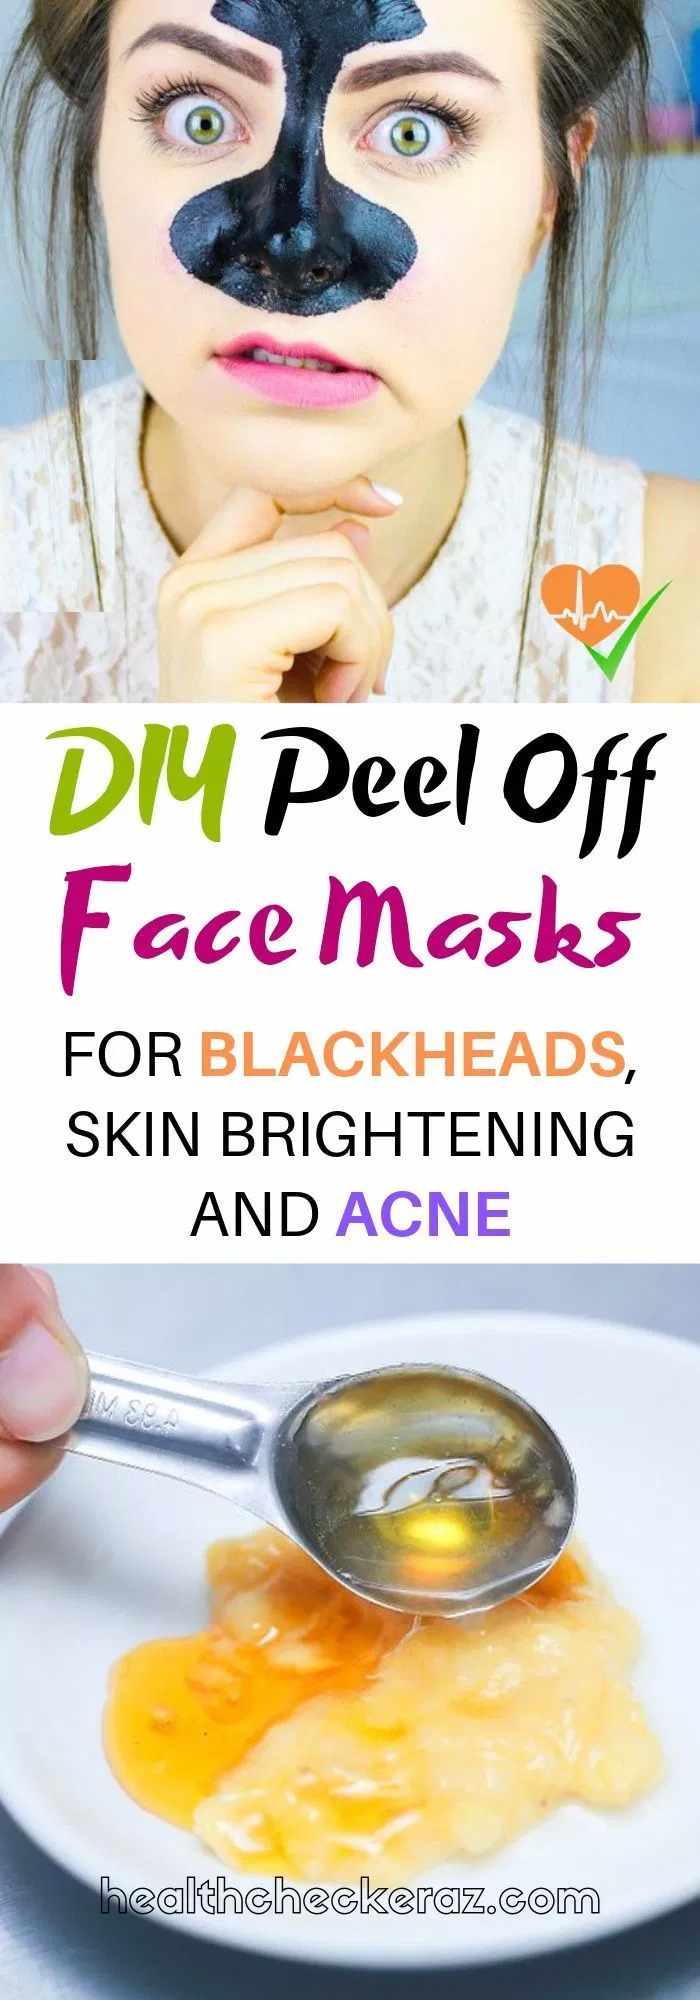 Photo of DIY Peel Off Face Masks For Blackheads, Skin Brightening and Acne #HomemadePeelM…